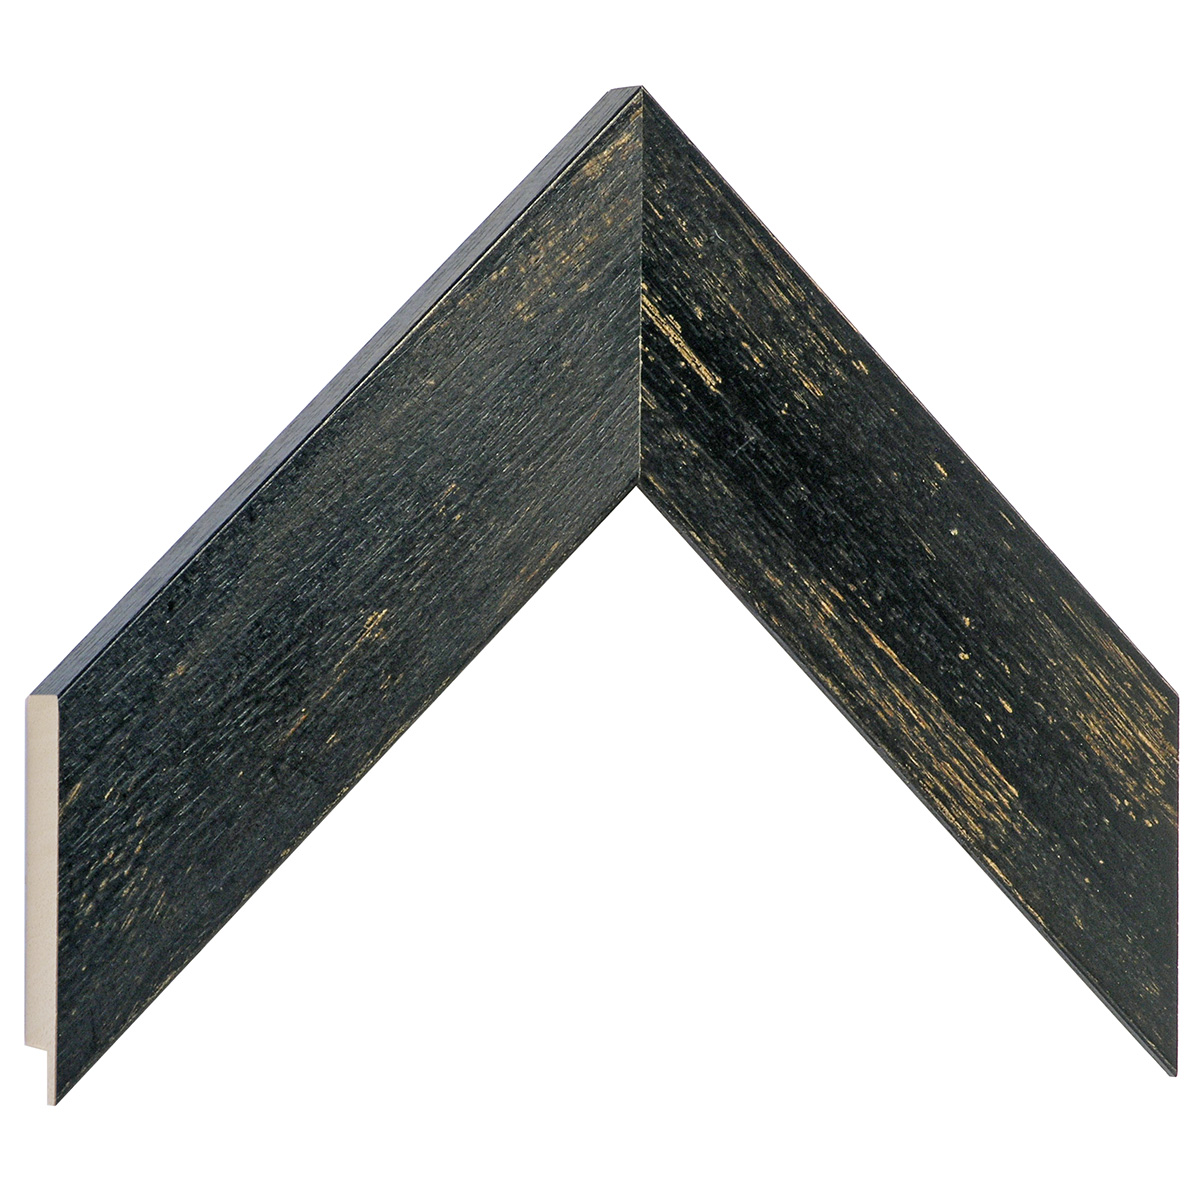 Moulding ayous 49mm - distressed black finish